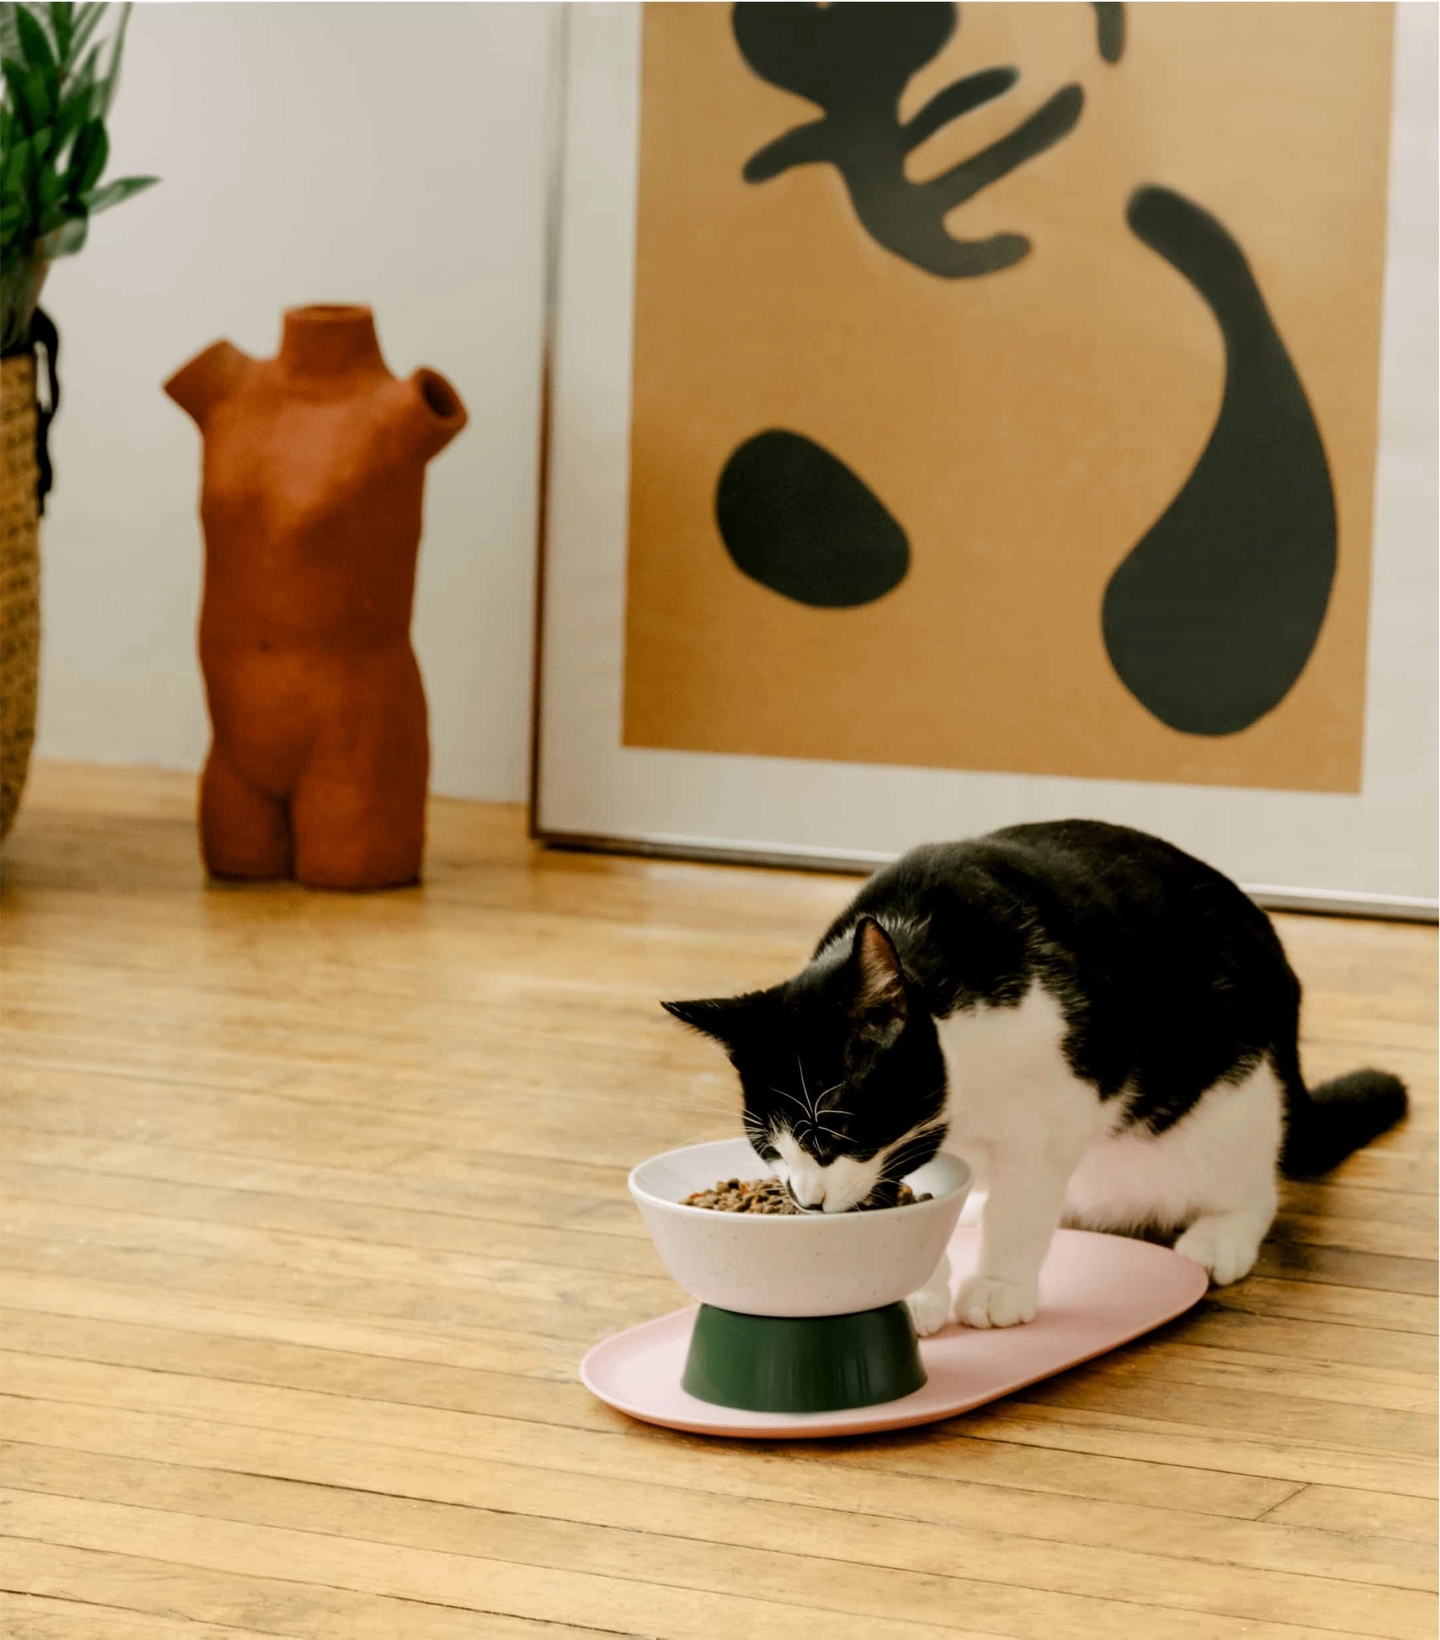 Cat eating Cat Person dry cat food out of a Cat Person Mesa Bowl